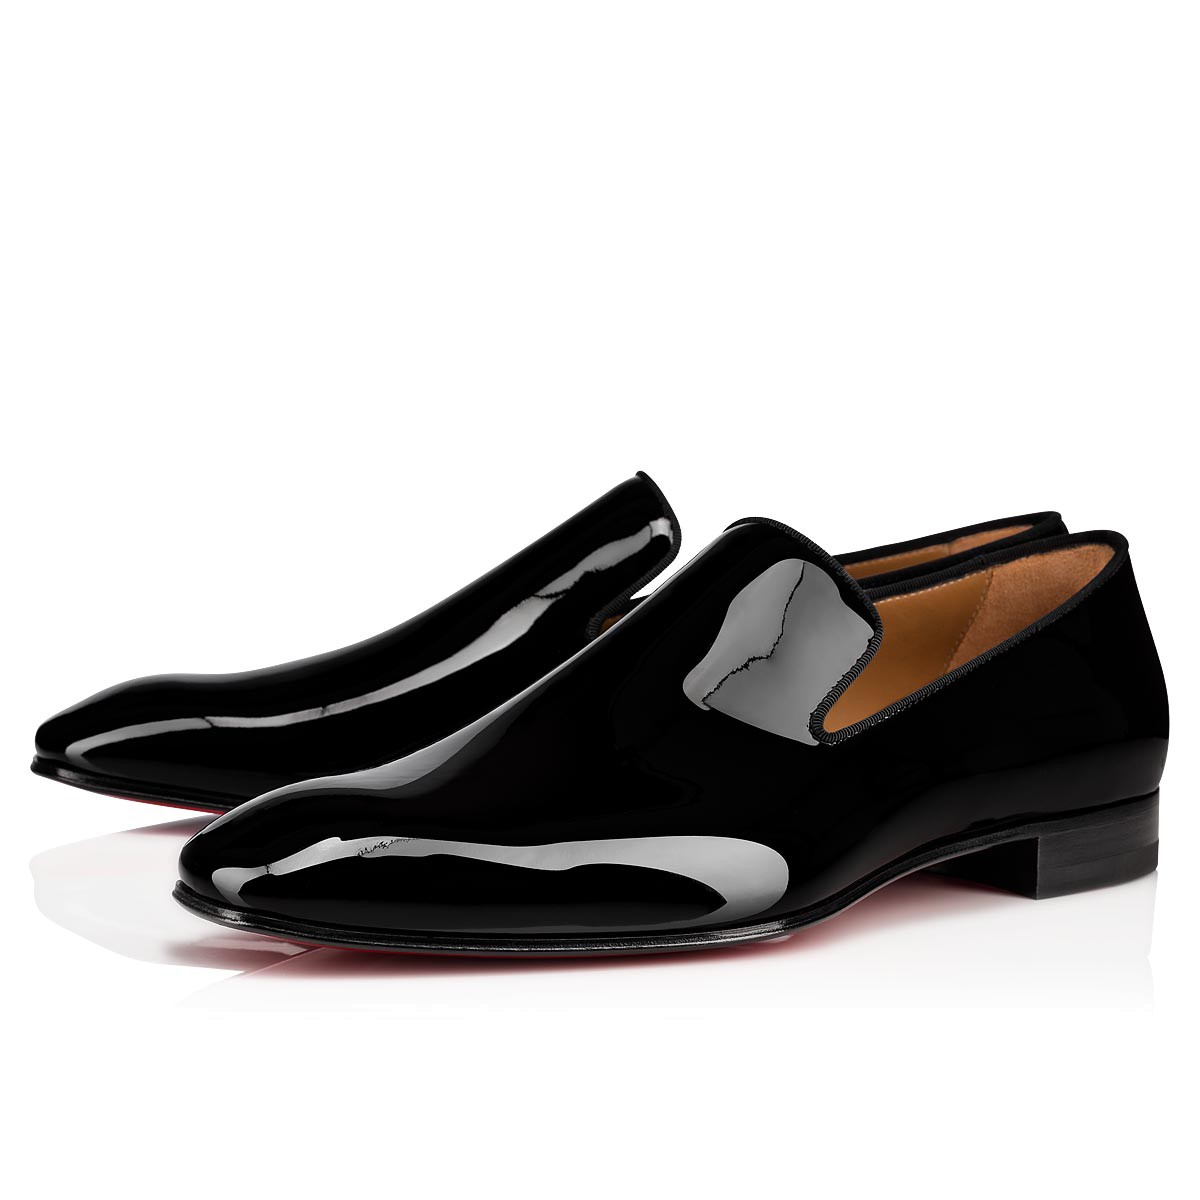 118aee046c4 Dandelion Flat Black Patent Leather - Men Shoes - Christian Louboutin